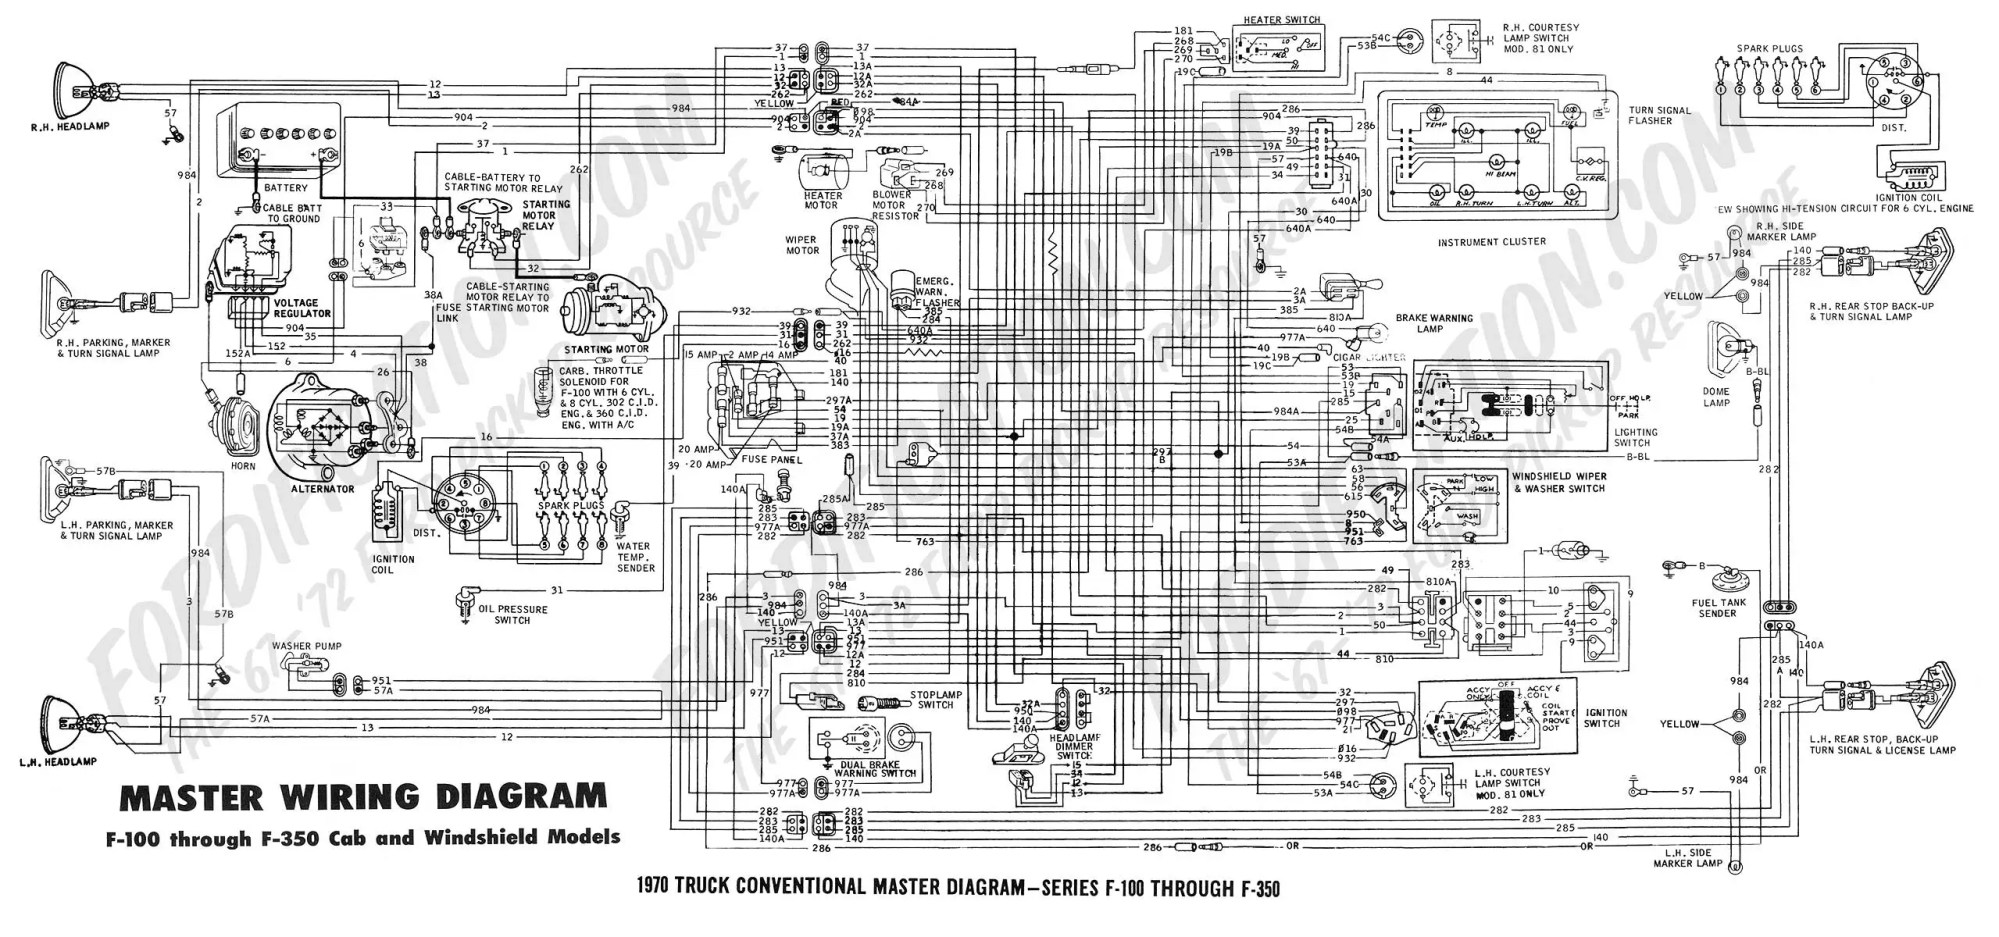 hight resolution of 1994 f 350 wiring diagram wiring diagram blog wiring diagram for 1994 ford f350